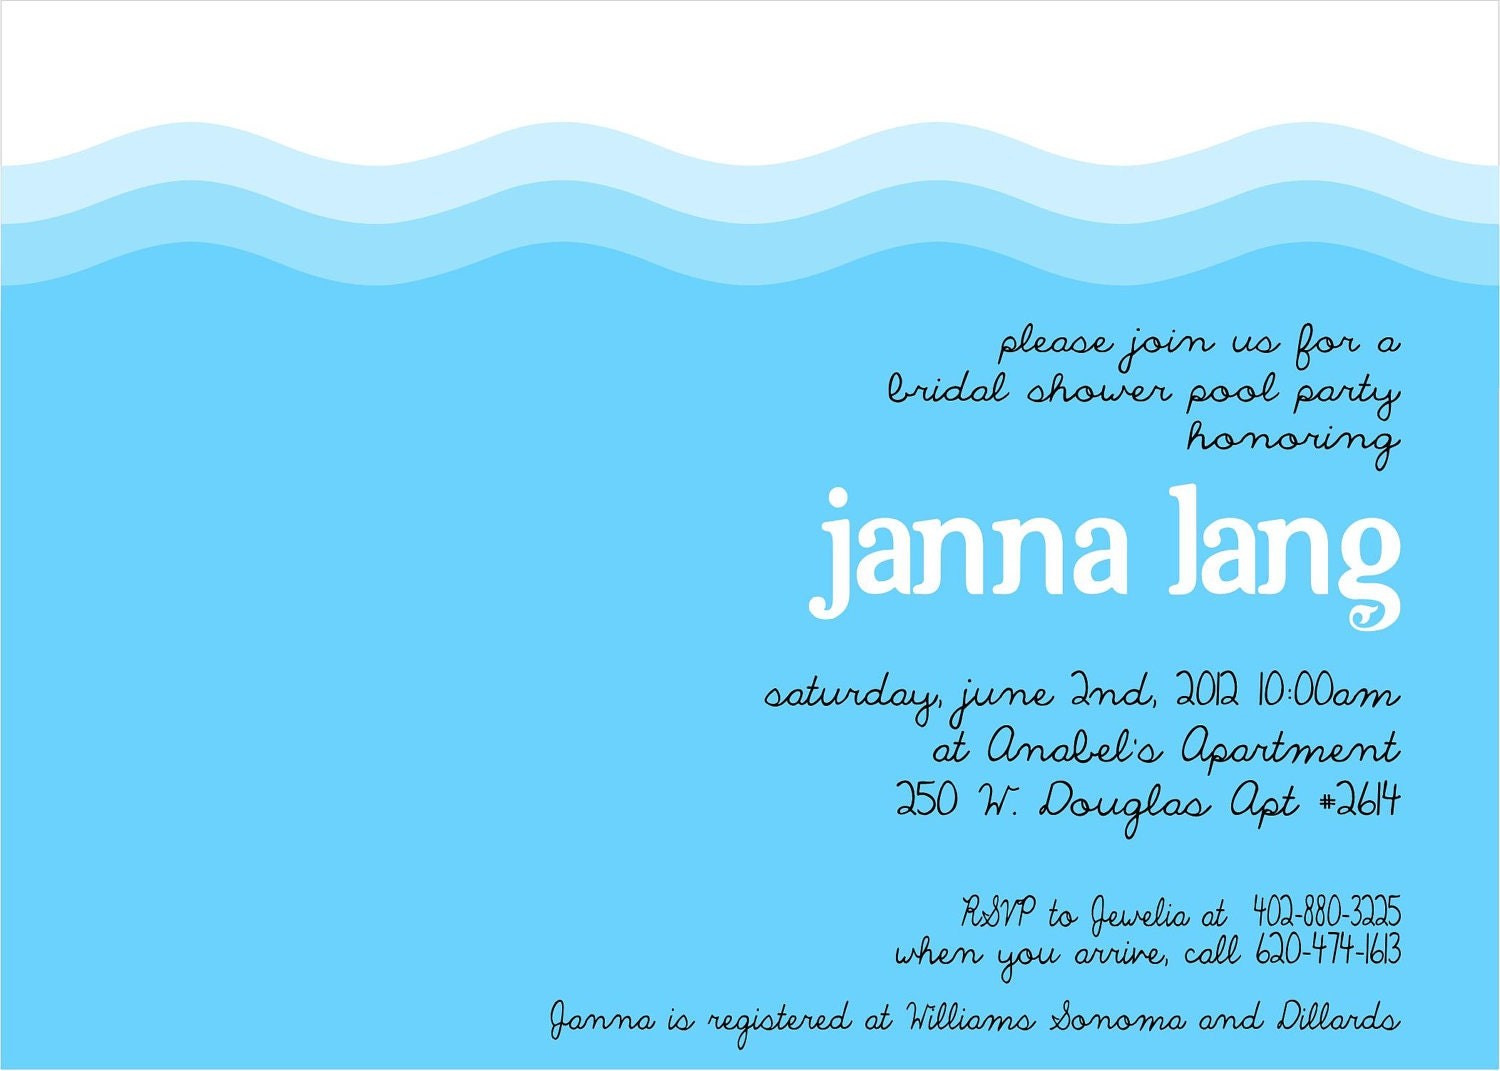 Wedding Invitations You Can Print Yourself is amazing invitation sample